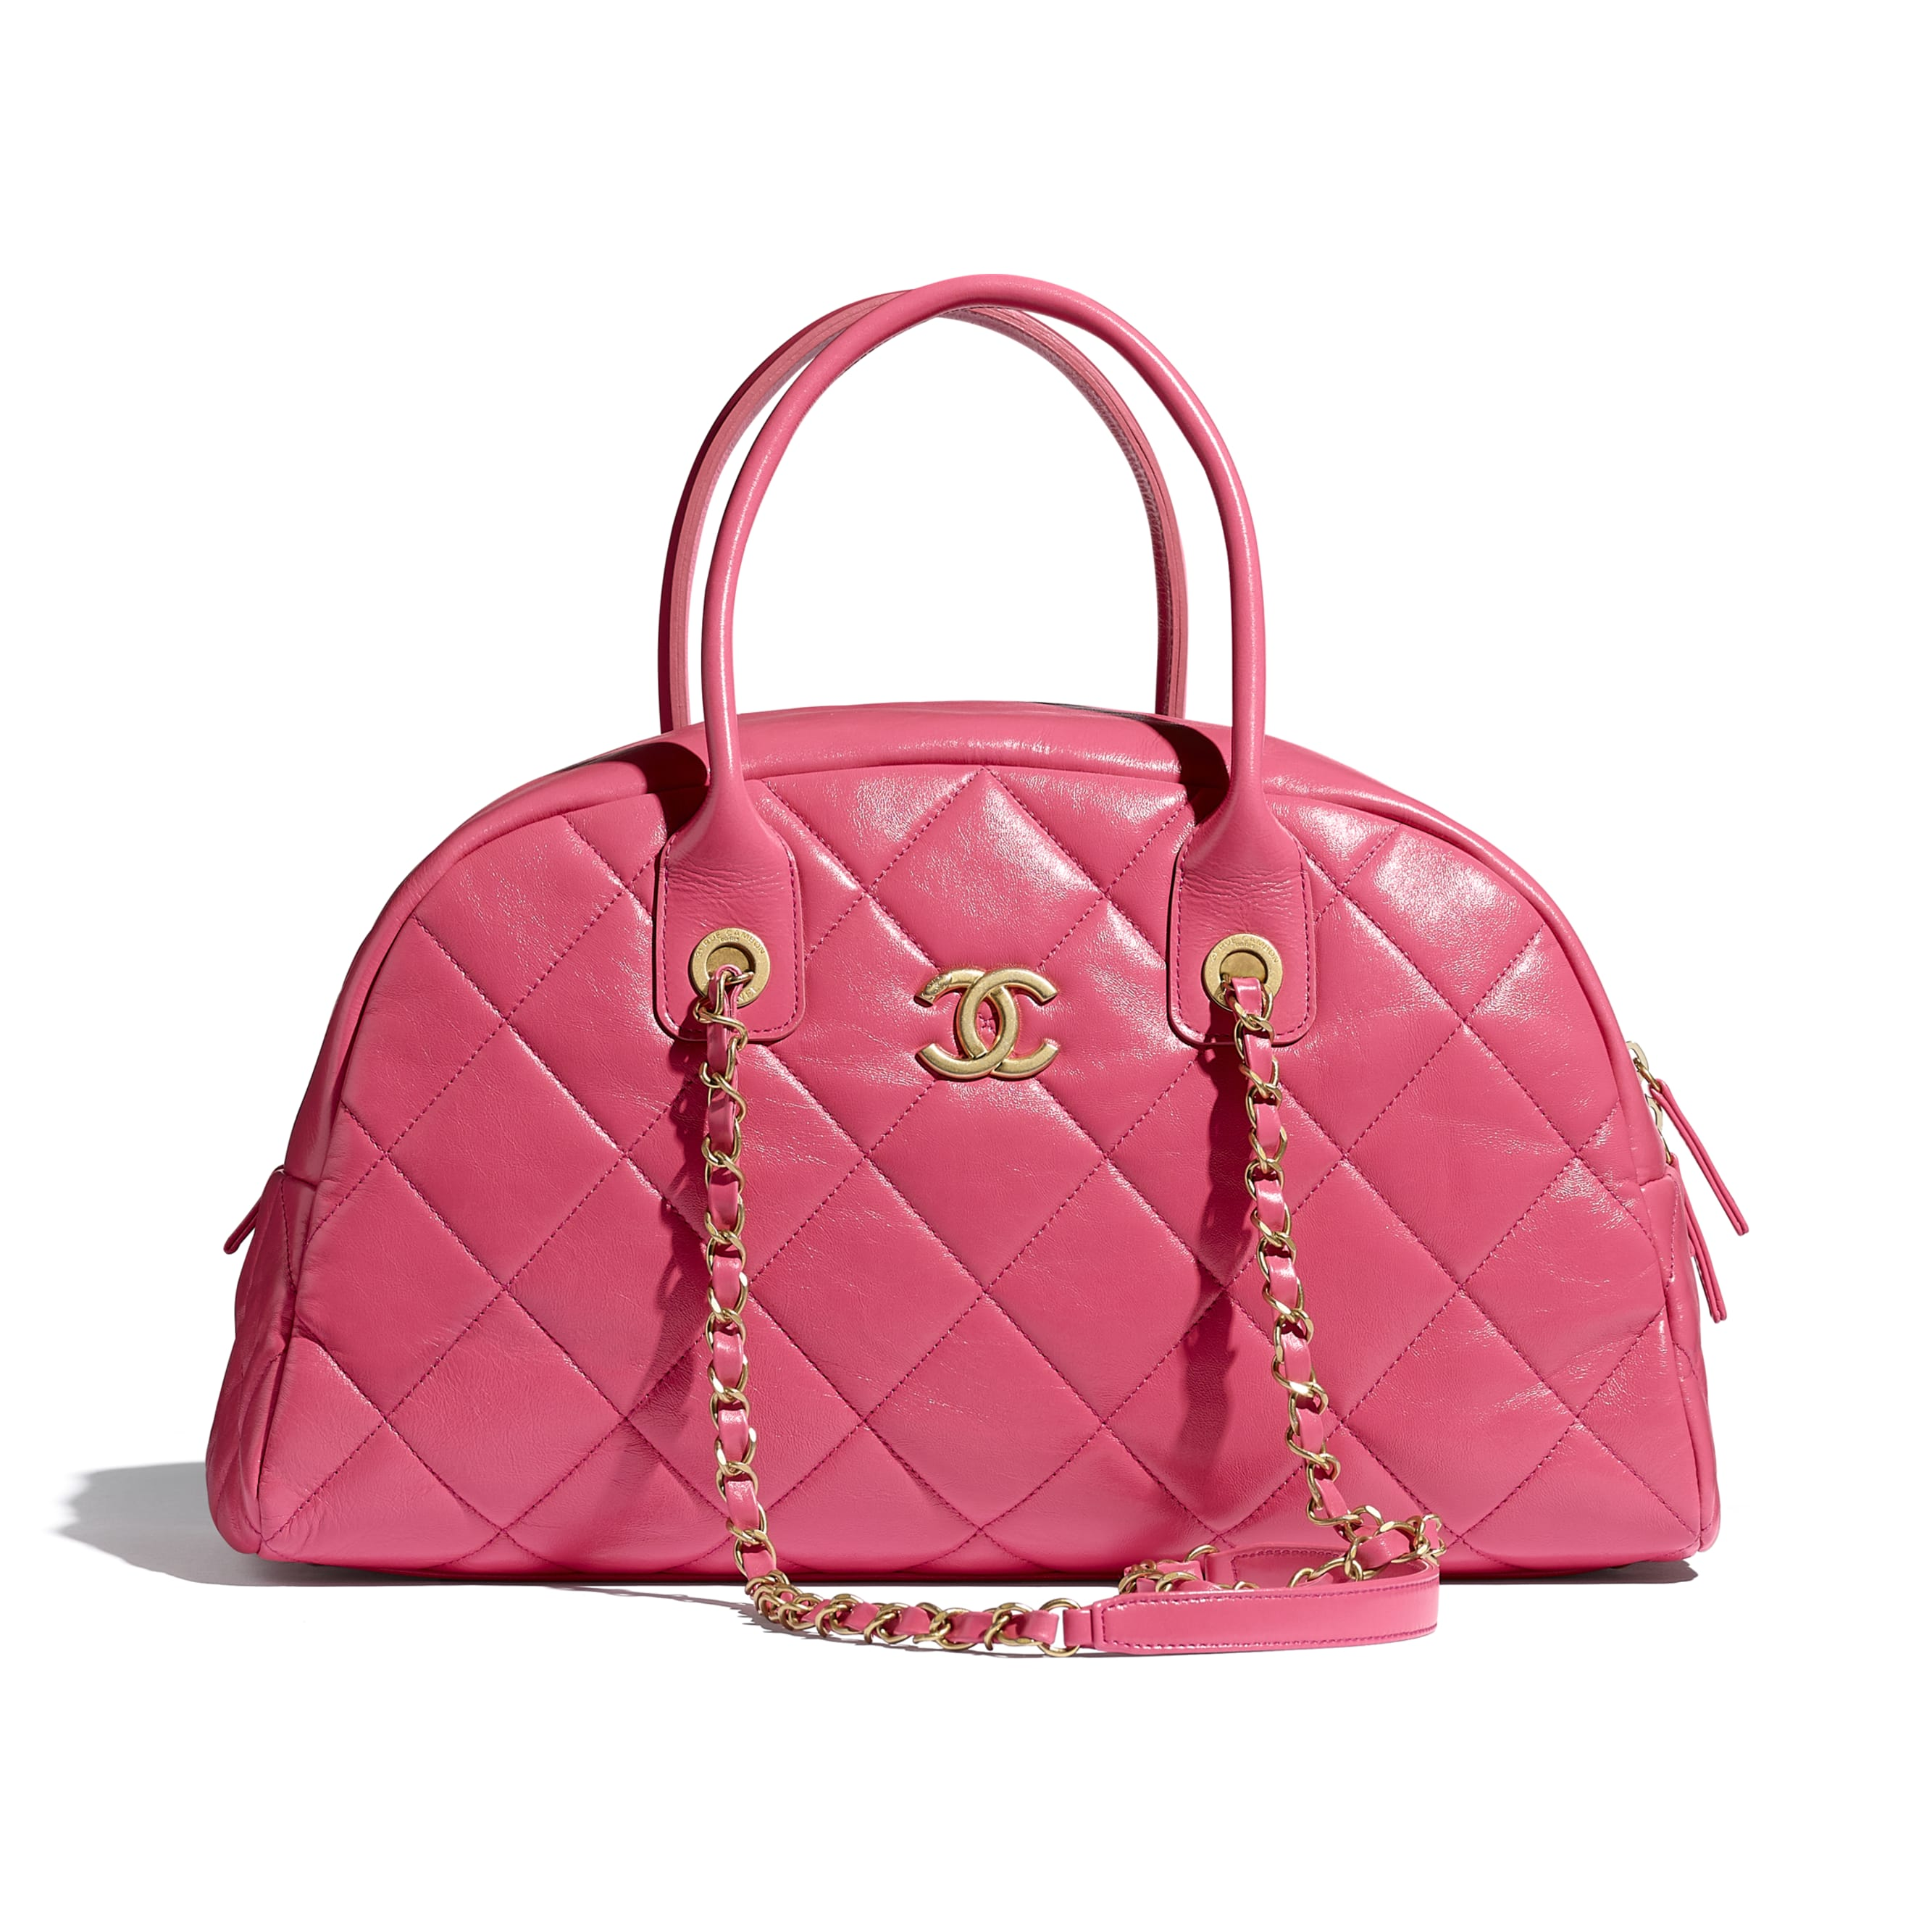 Bowling Bag - Pink - Calfskin & Gold-Tone Metal - CHANEL - Default view - see standard sized version